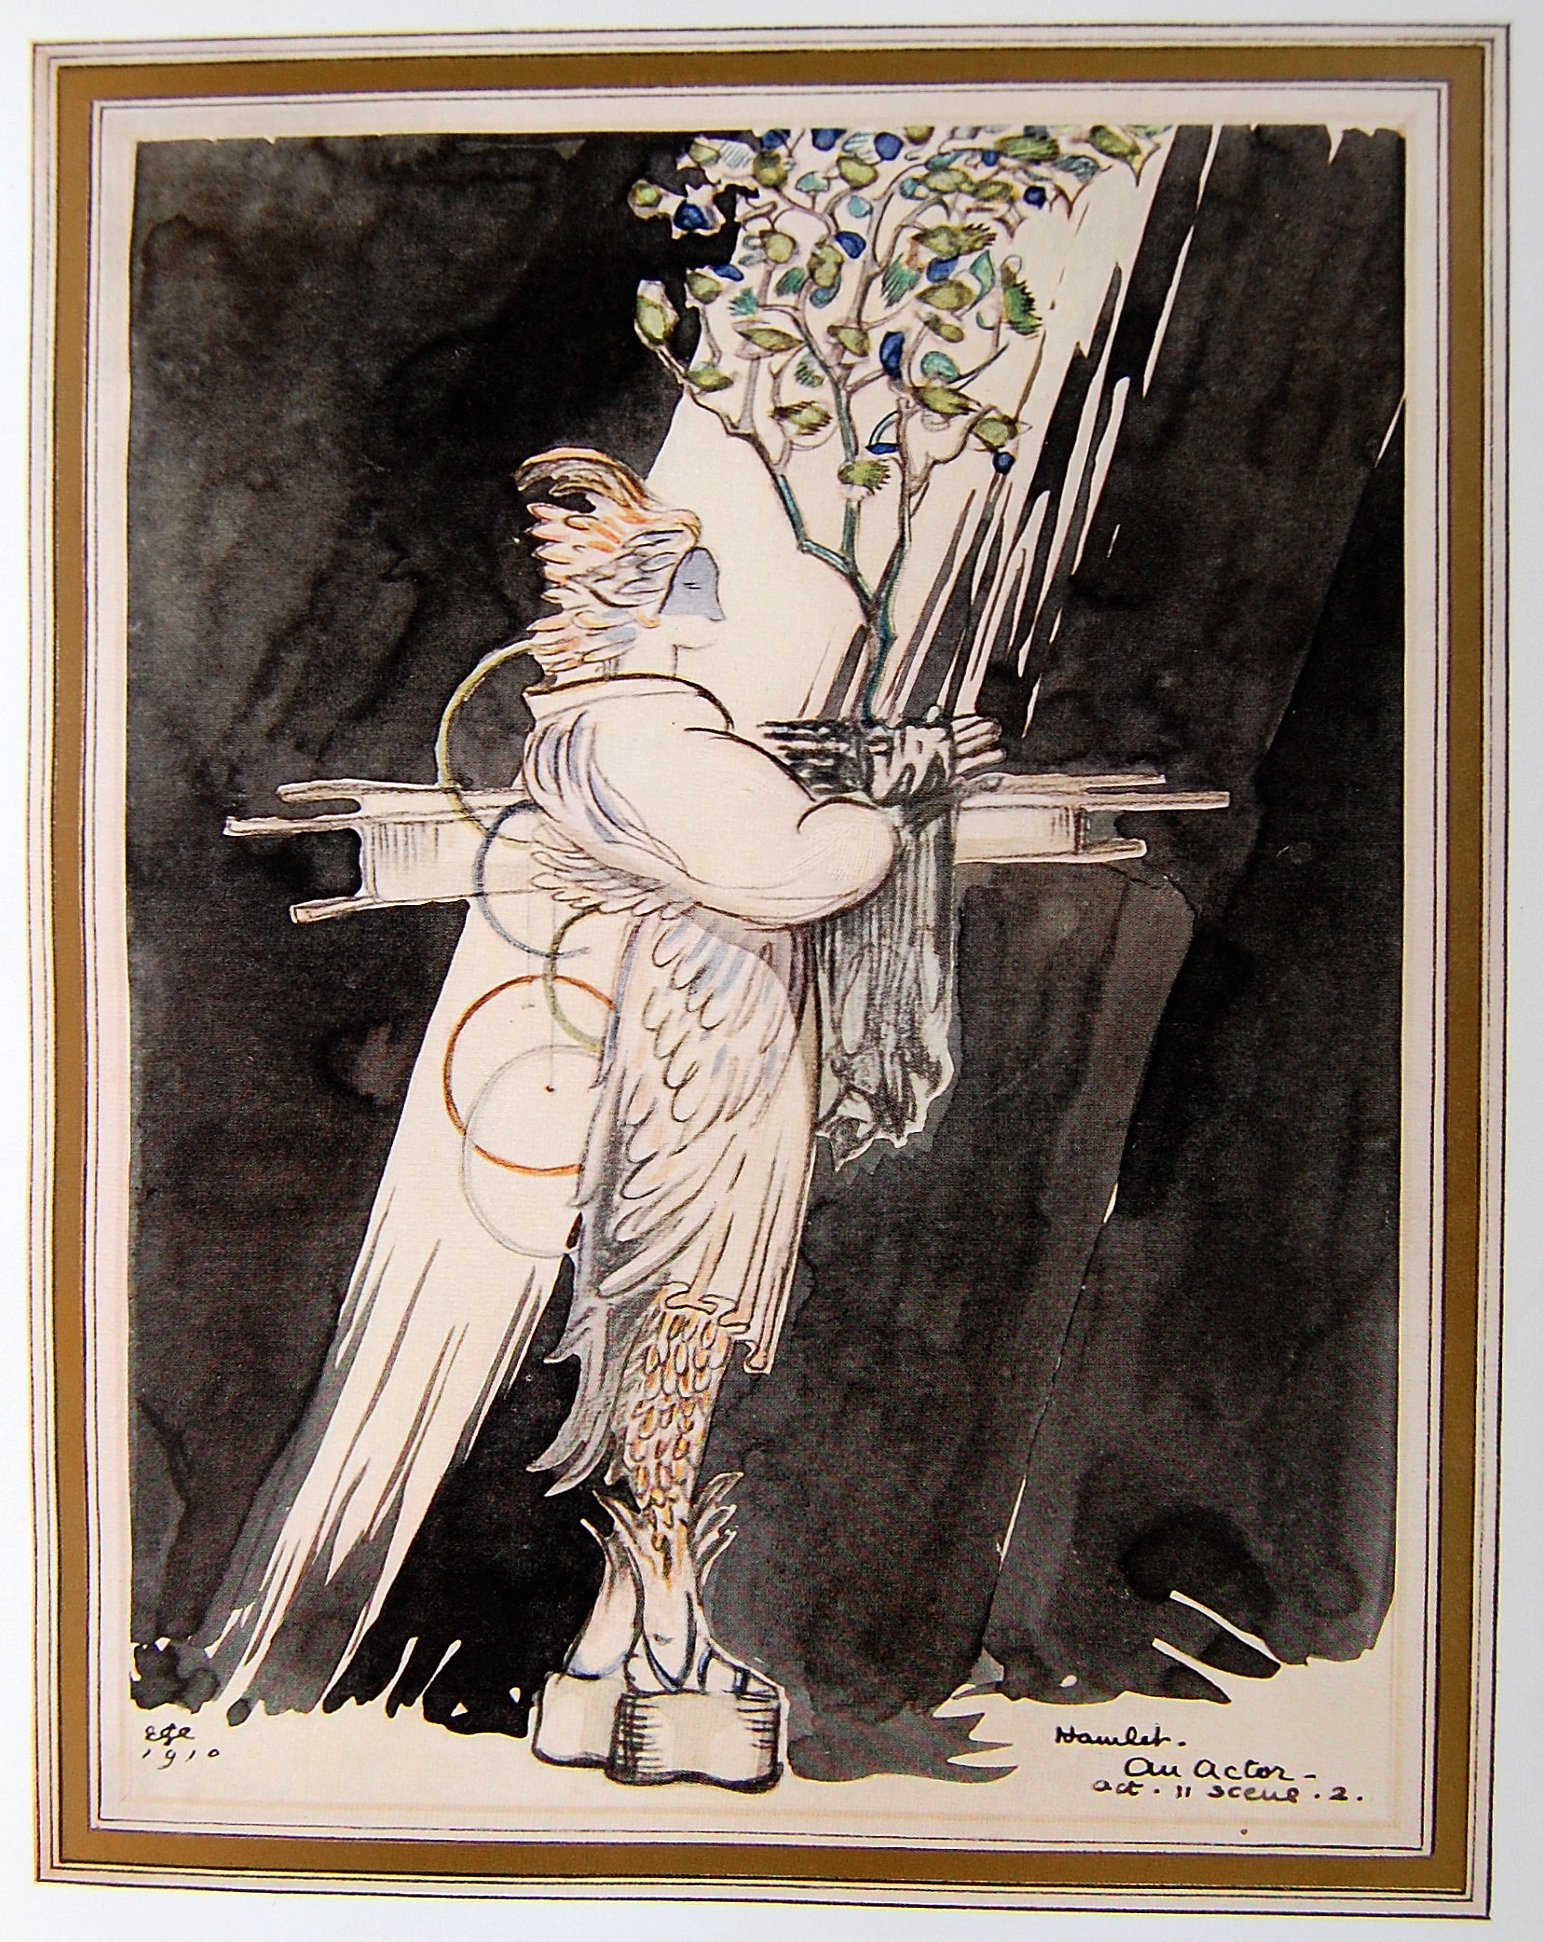 Plate of 1910 costume design for an actor in Hamlet (Act II, Scene II) by Edward Gordon Craig in Robes of Thespis: Costume Designs by Modern Artists, edited for Rupert Mason by George Sheringham and R. Boyd Morrison.